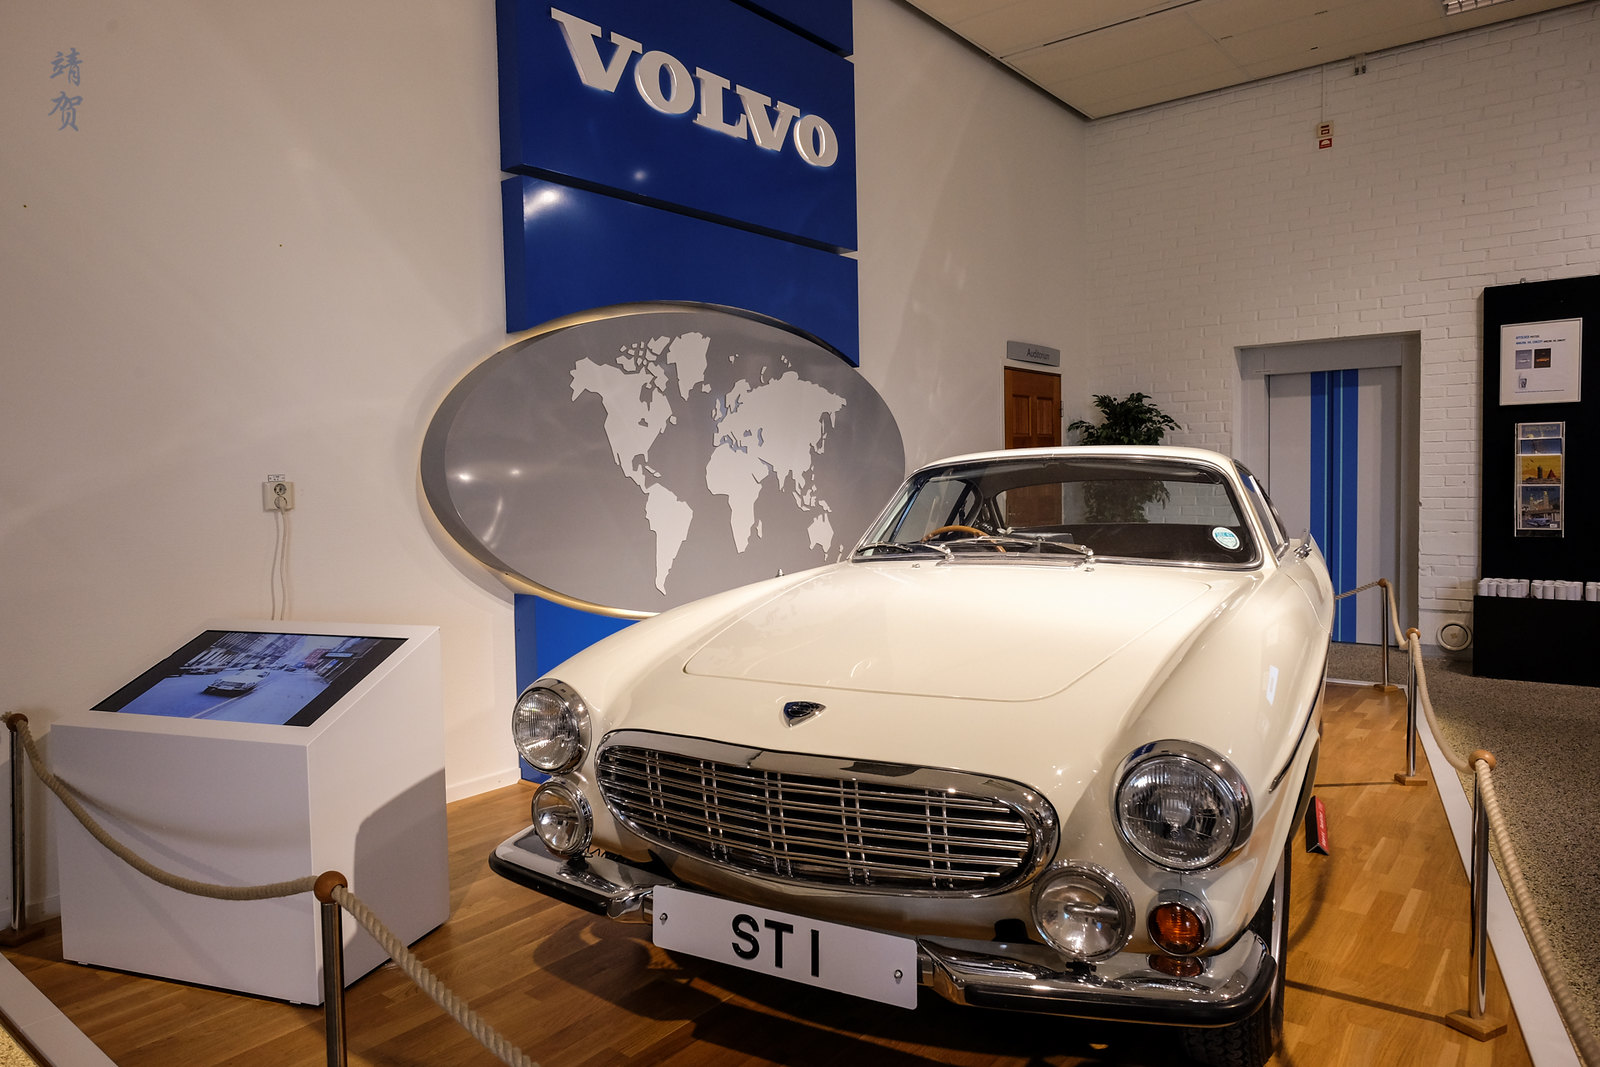 Roger Moore's Volvo in The Saint